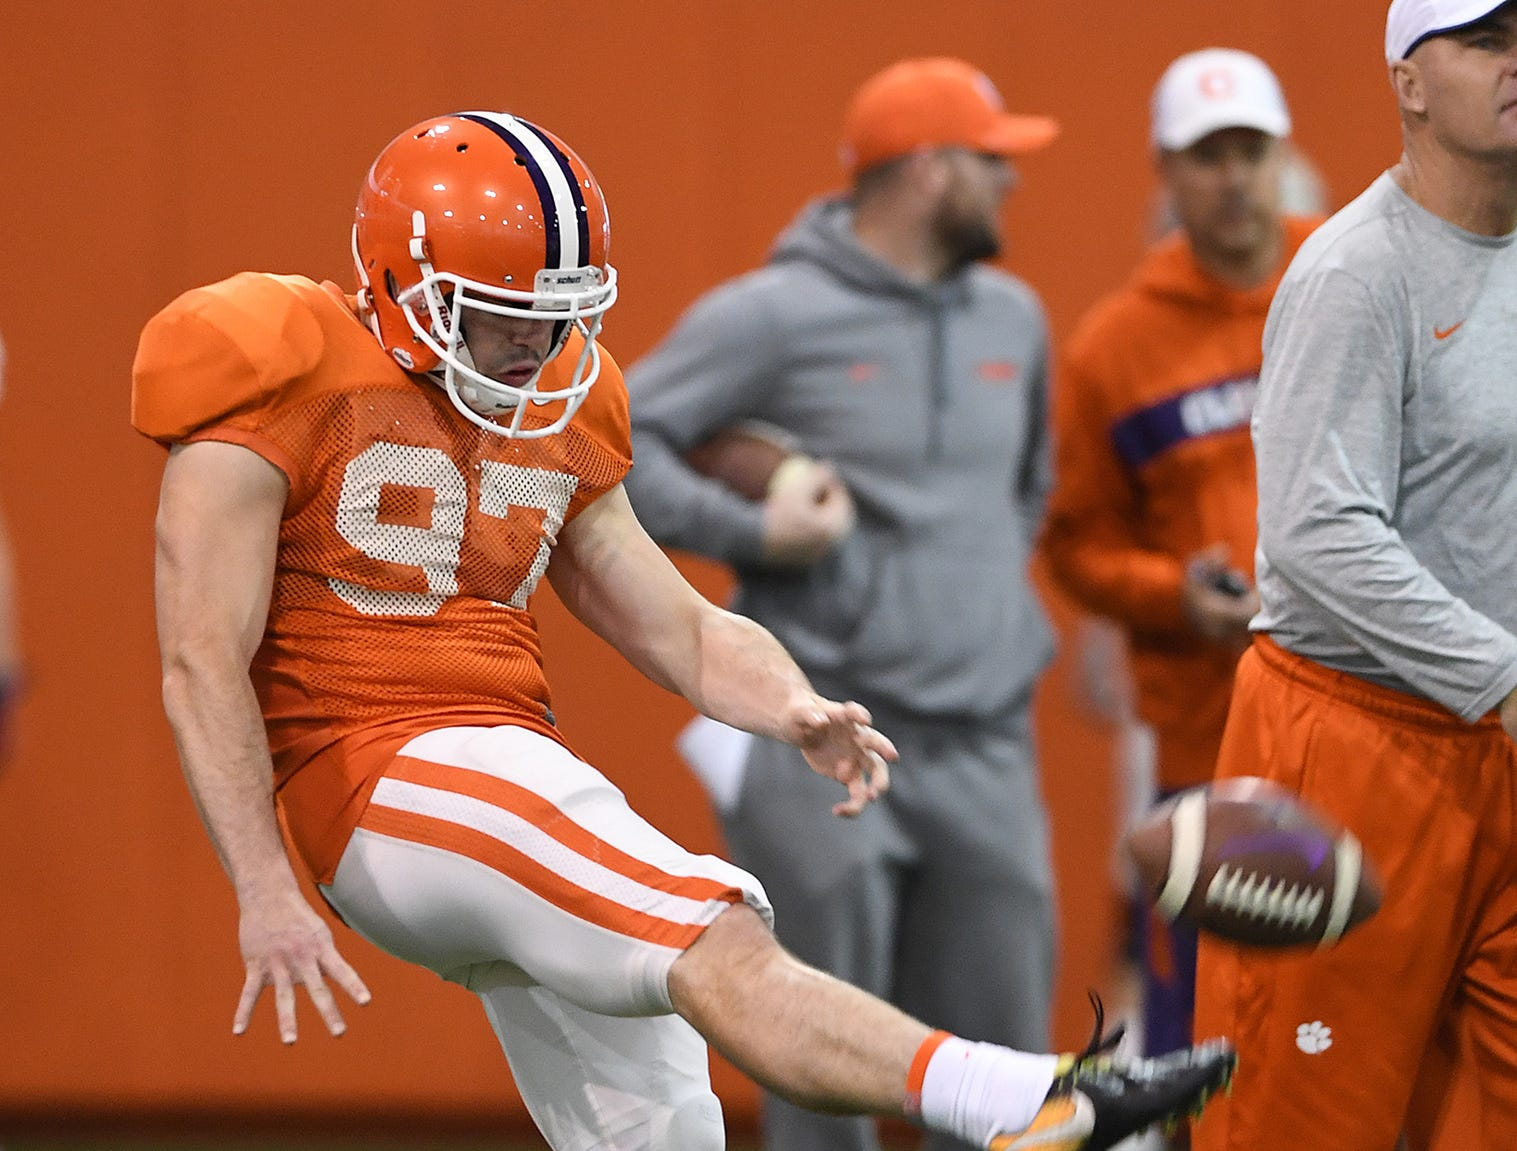 Clemson punter Carson King (97) punts during the Tigers Cotton Bowl practice on Friday, December 14, 2018.